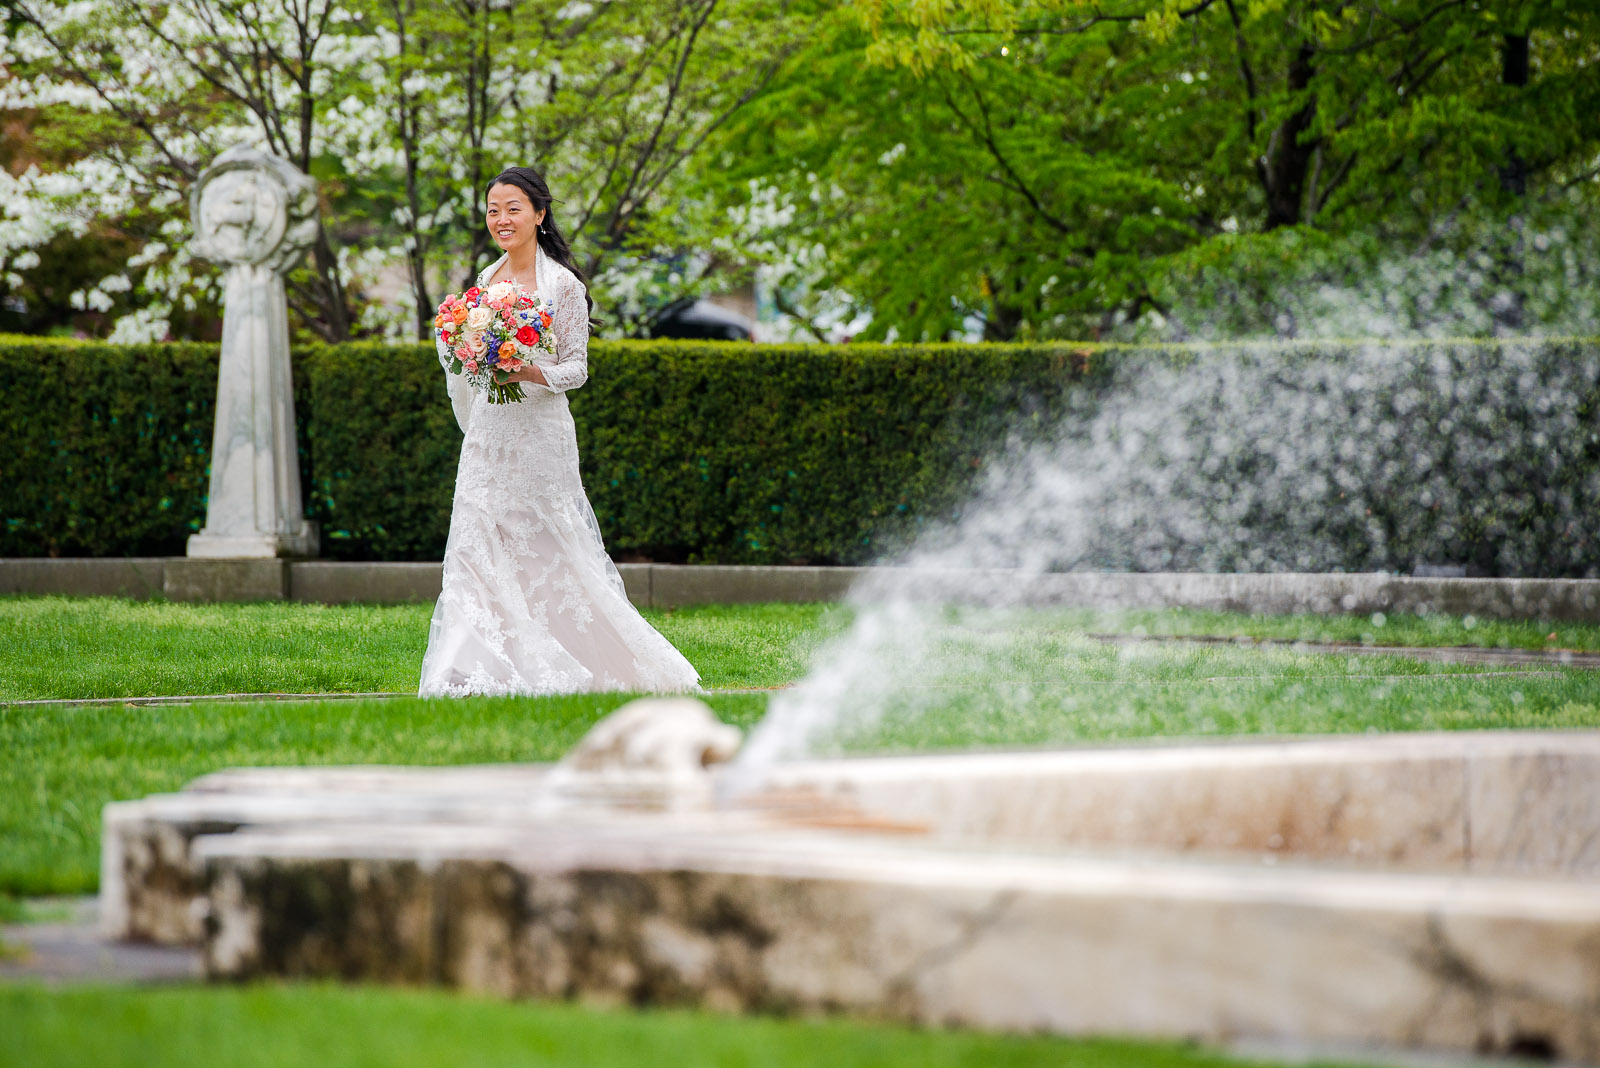 Eric_and_Christy_Photography_Blog_Wedding_Anne_Michael-6